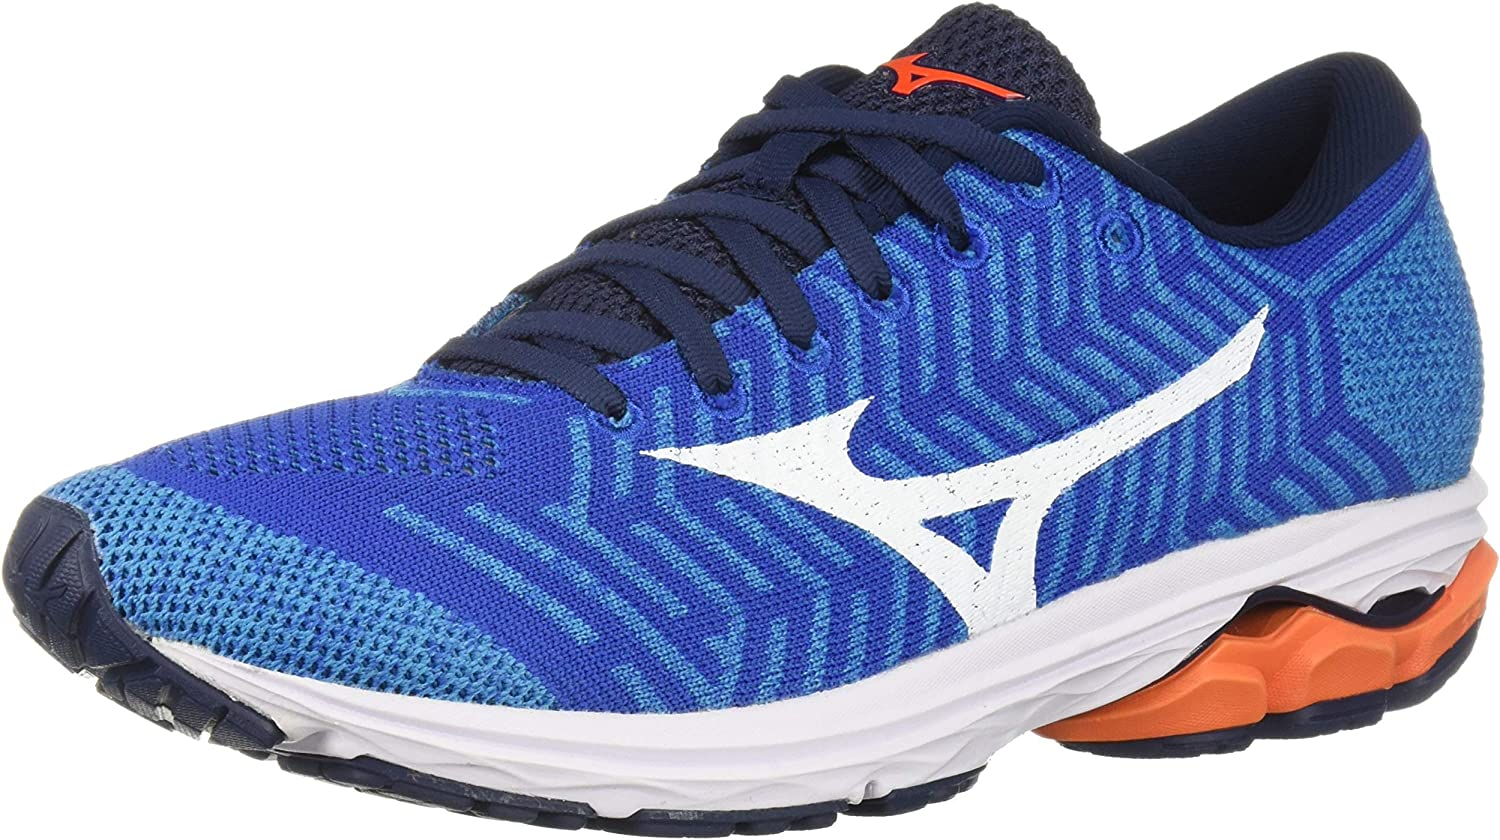 mizuno men's wave rider 22 review comprar